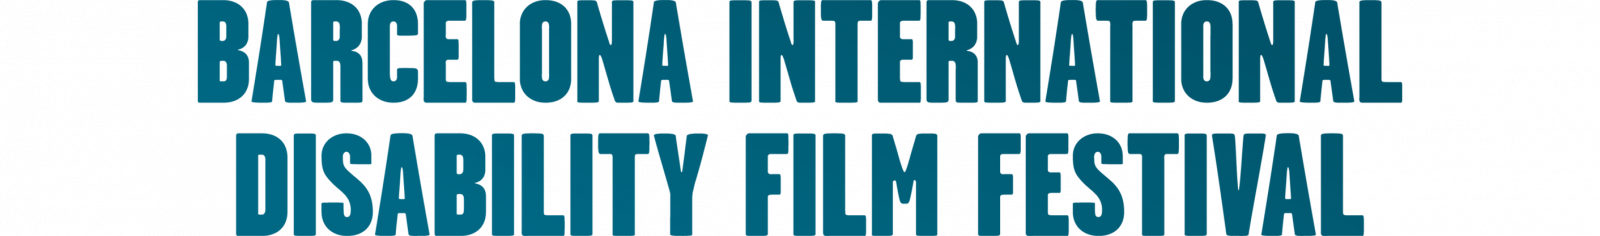 Barcelona International disability film festival